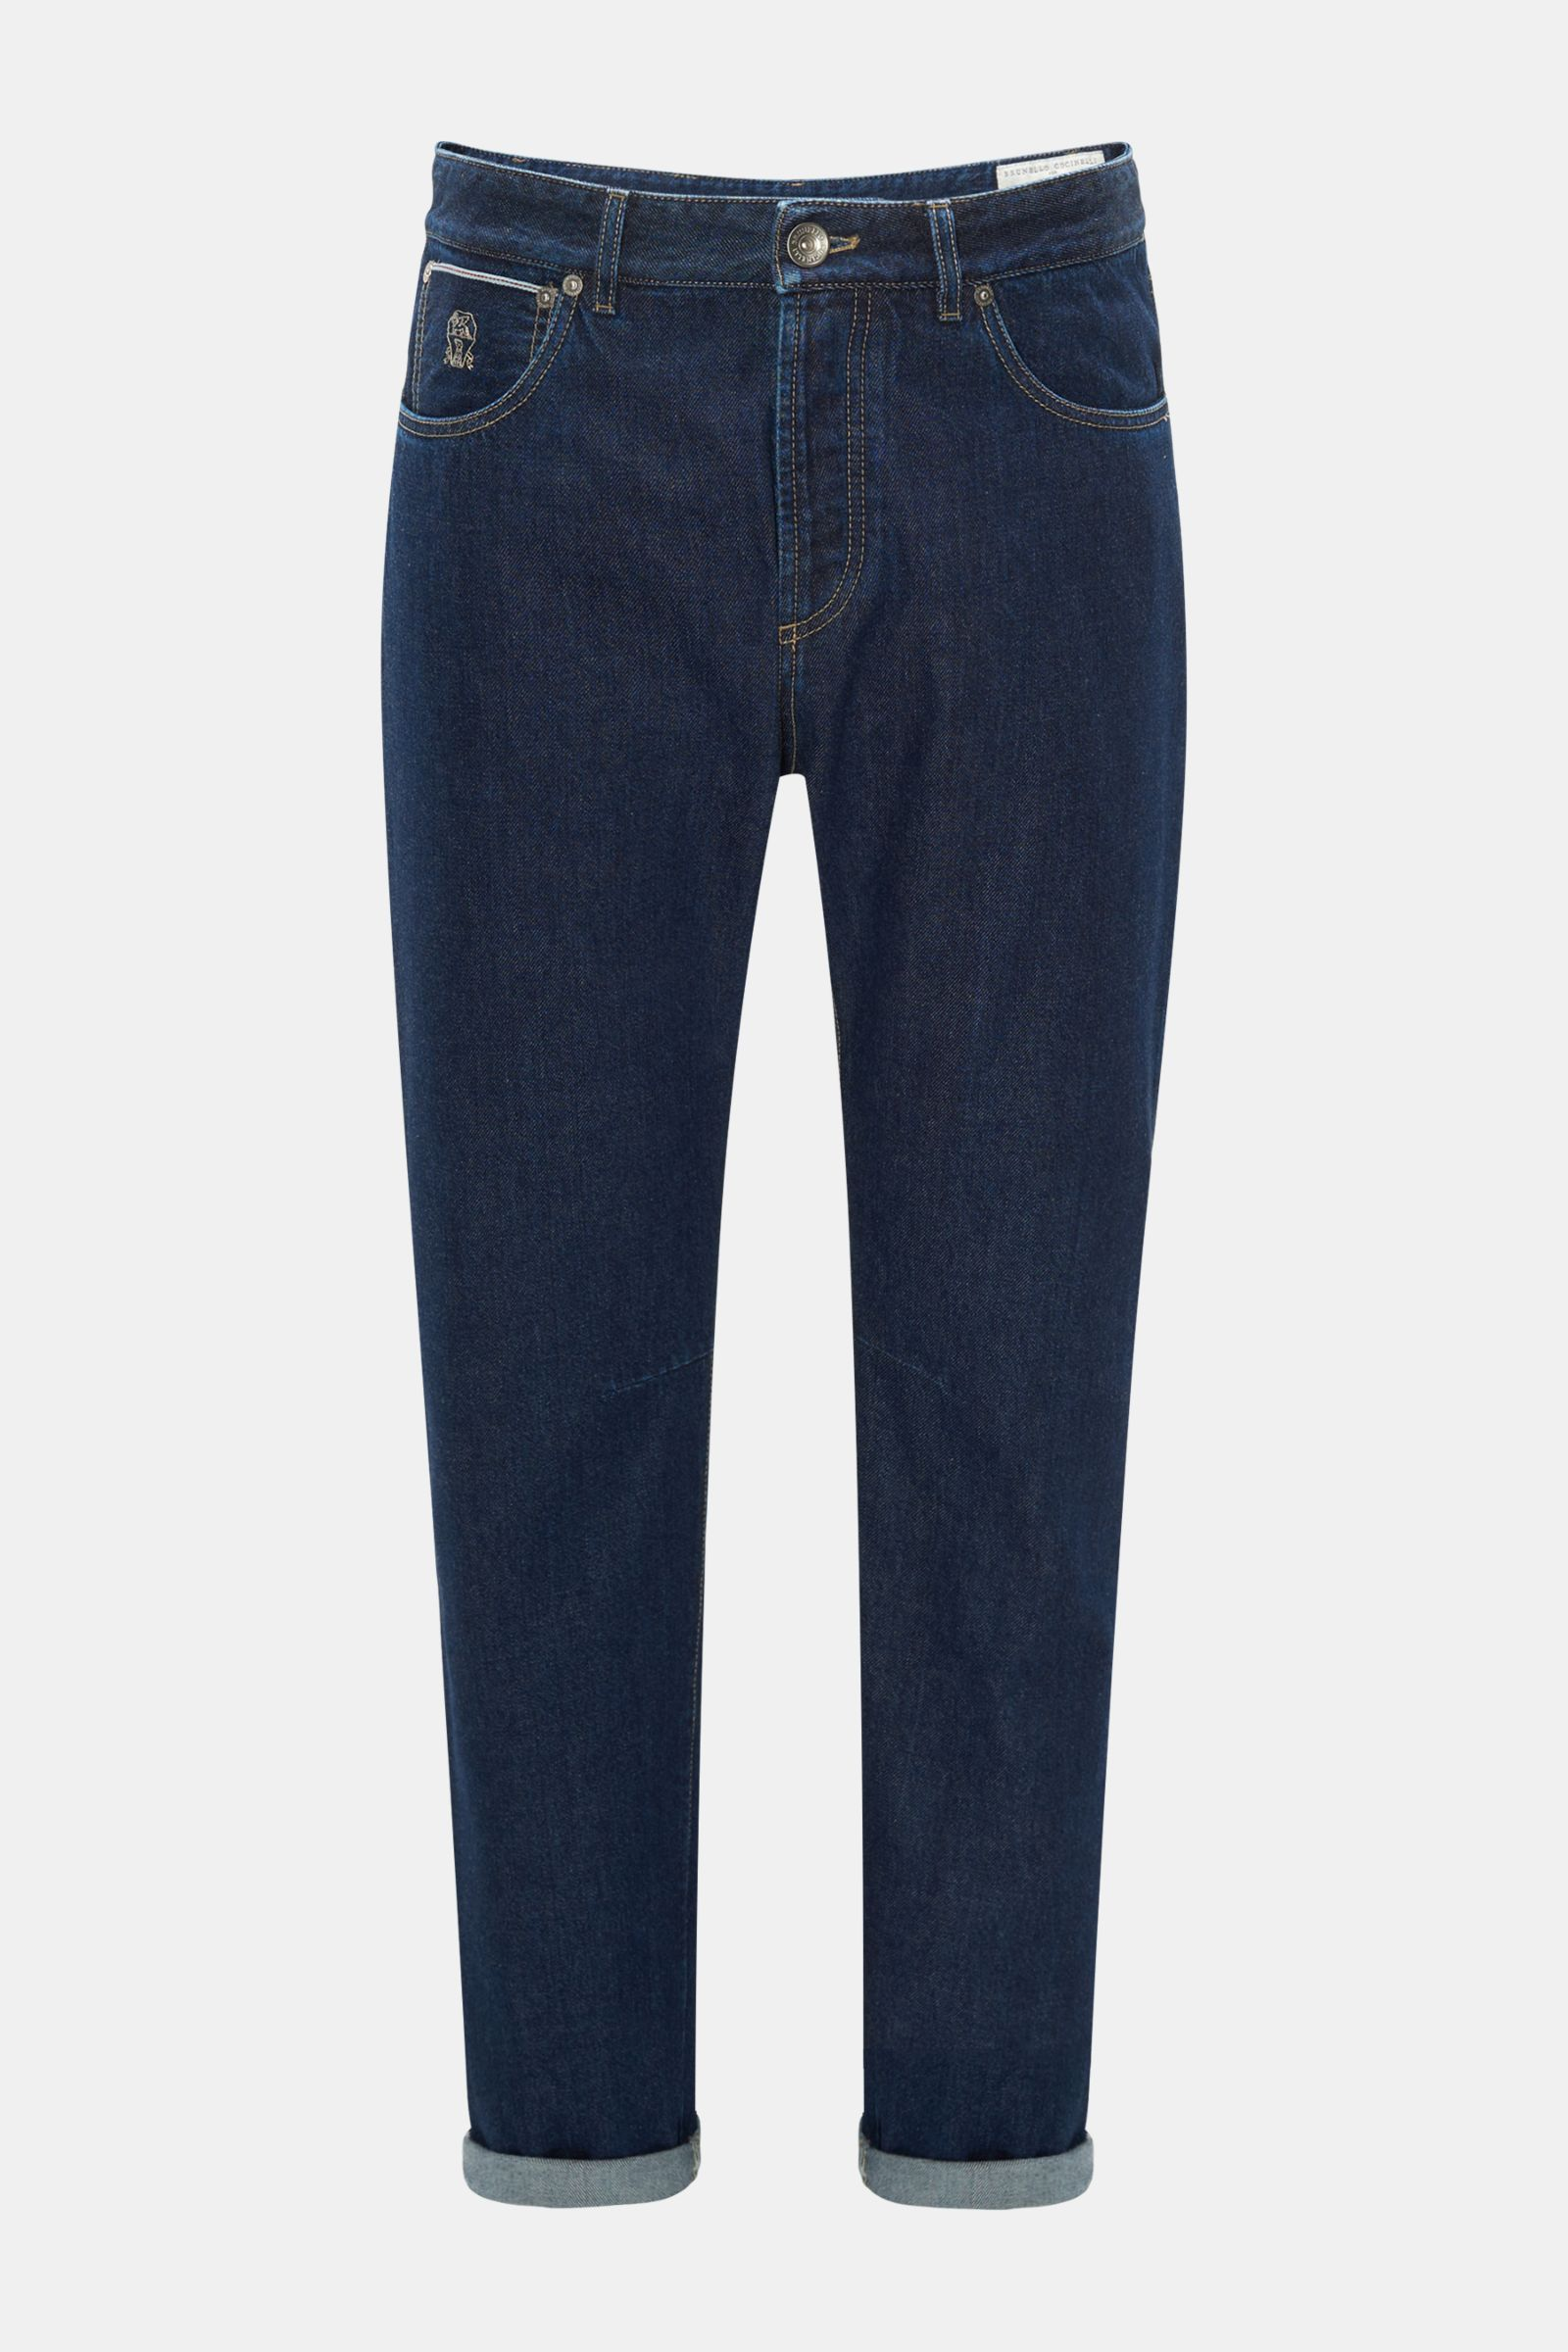 Jeans 'Leisure Fit' navy